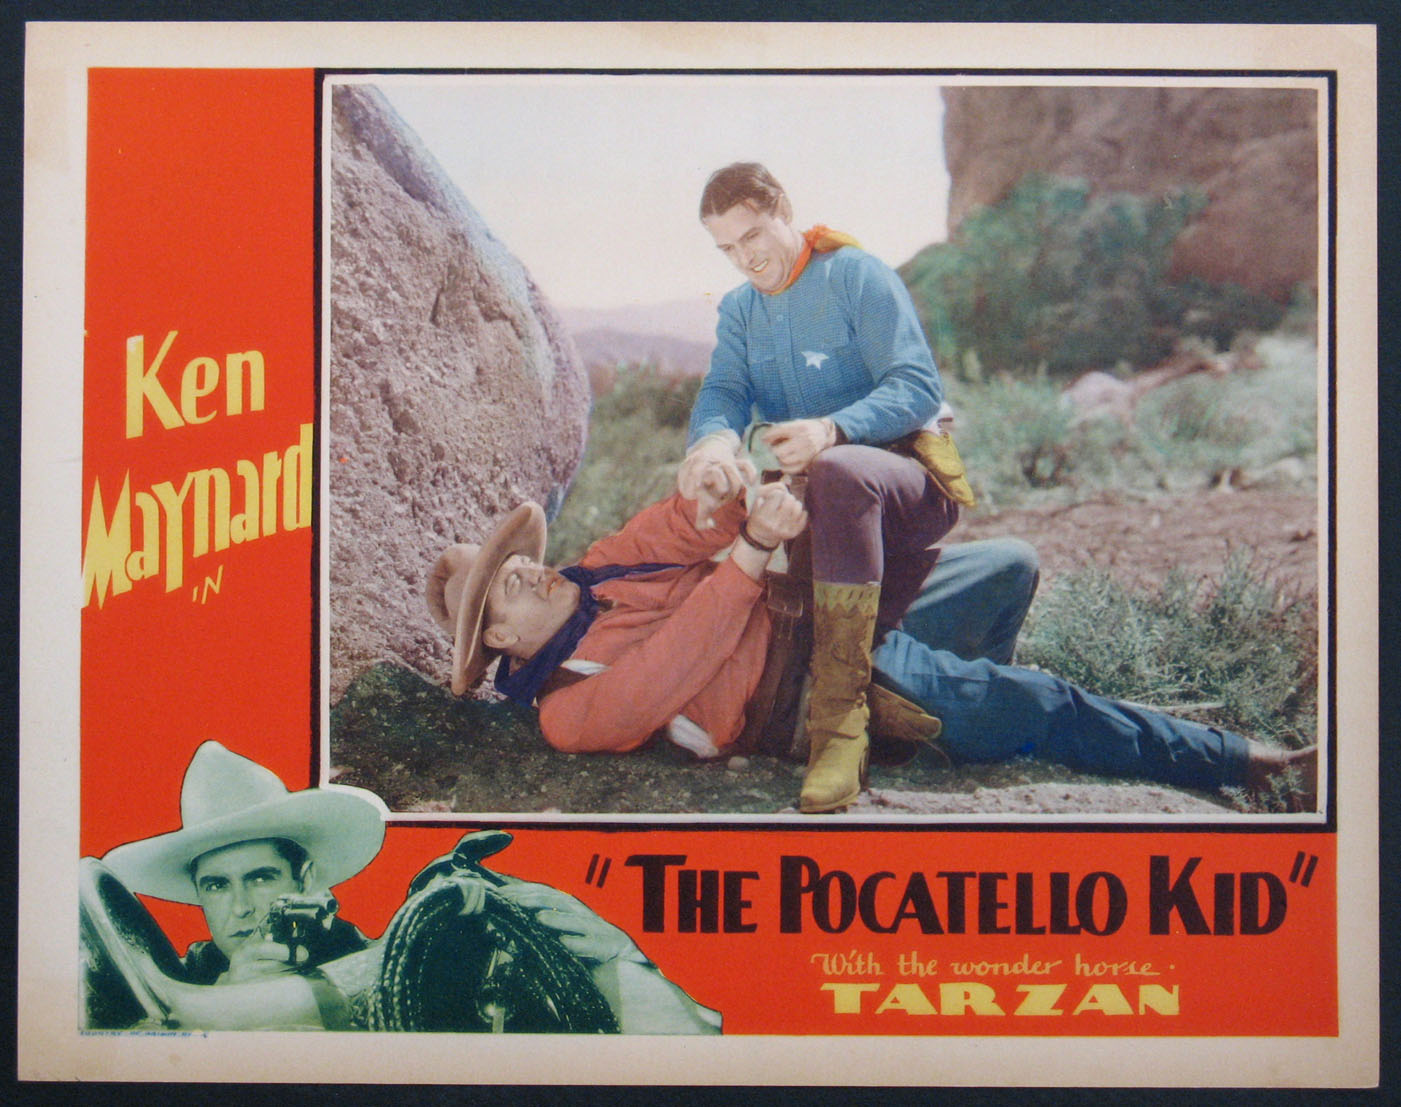 POCATELLO KID, THE @ FilmPosters.com